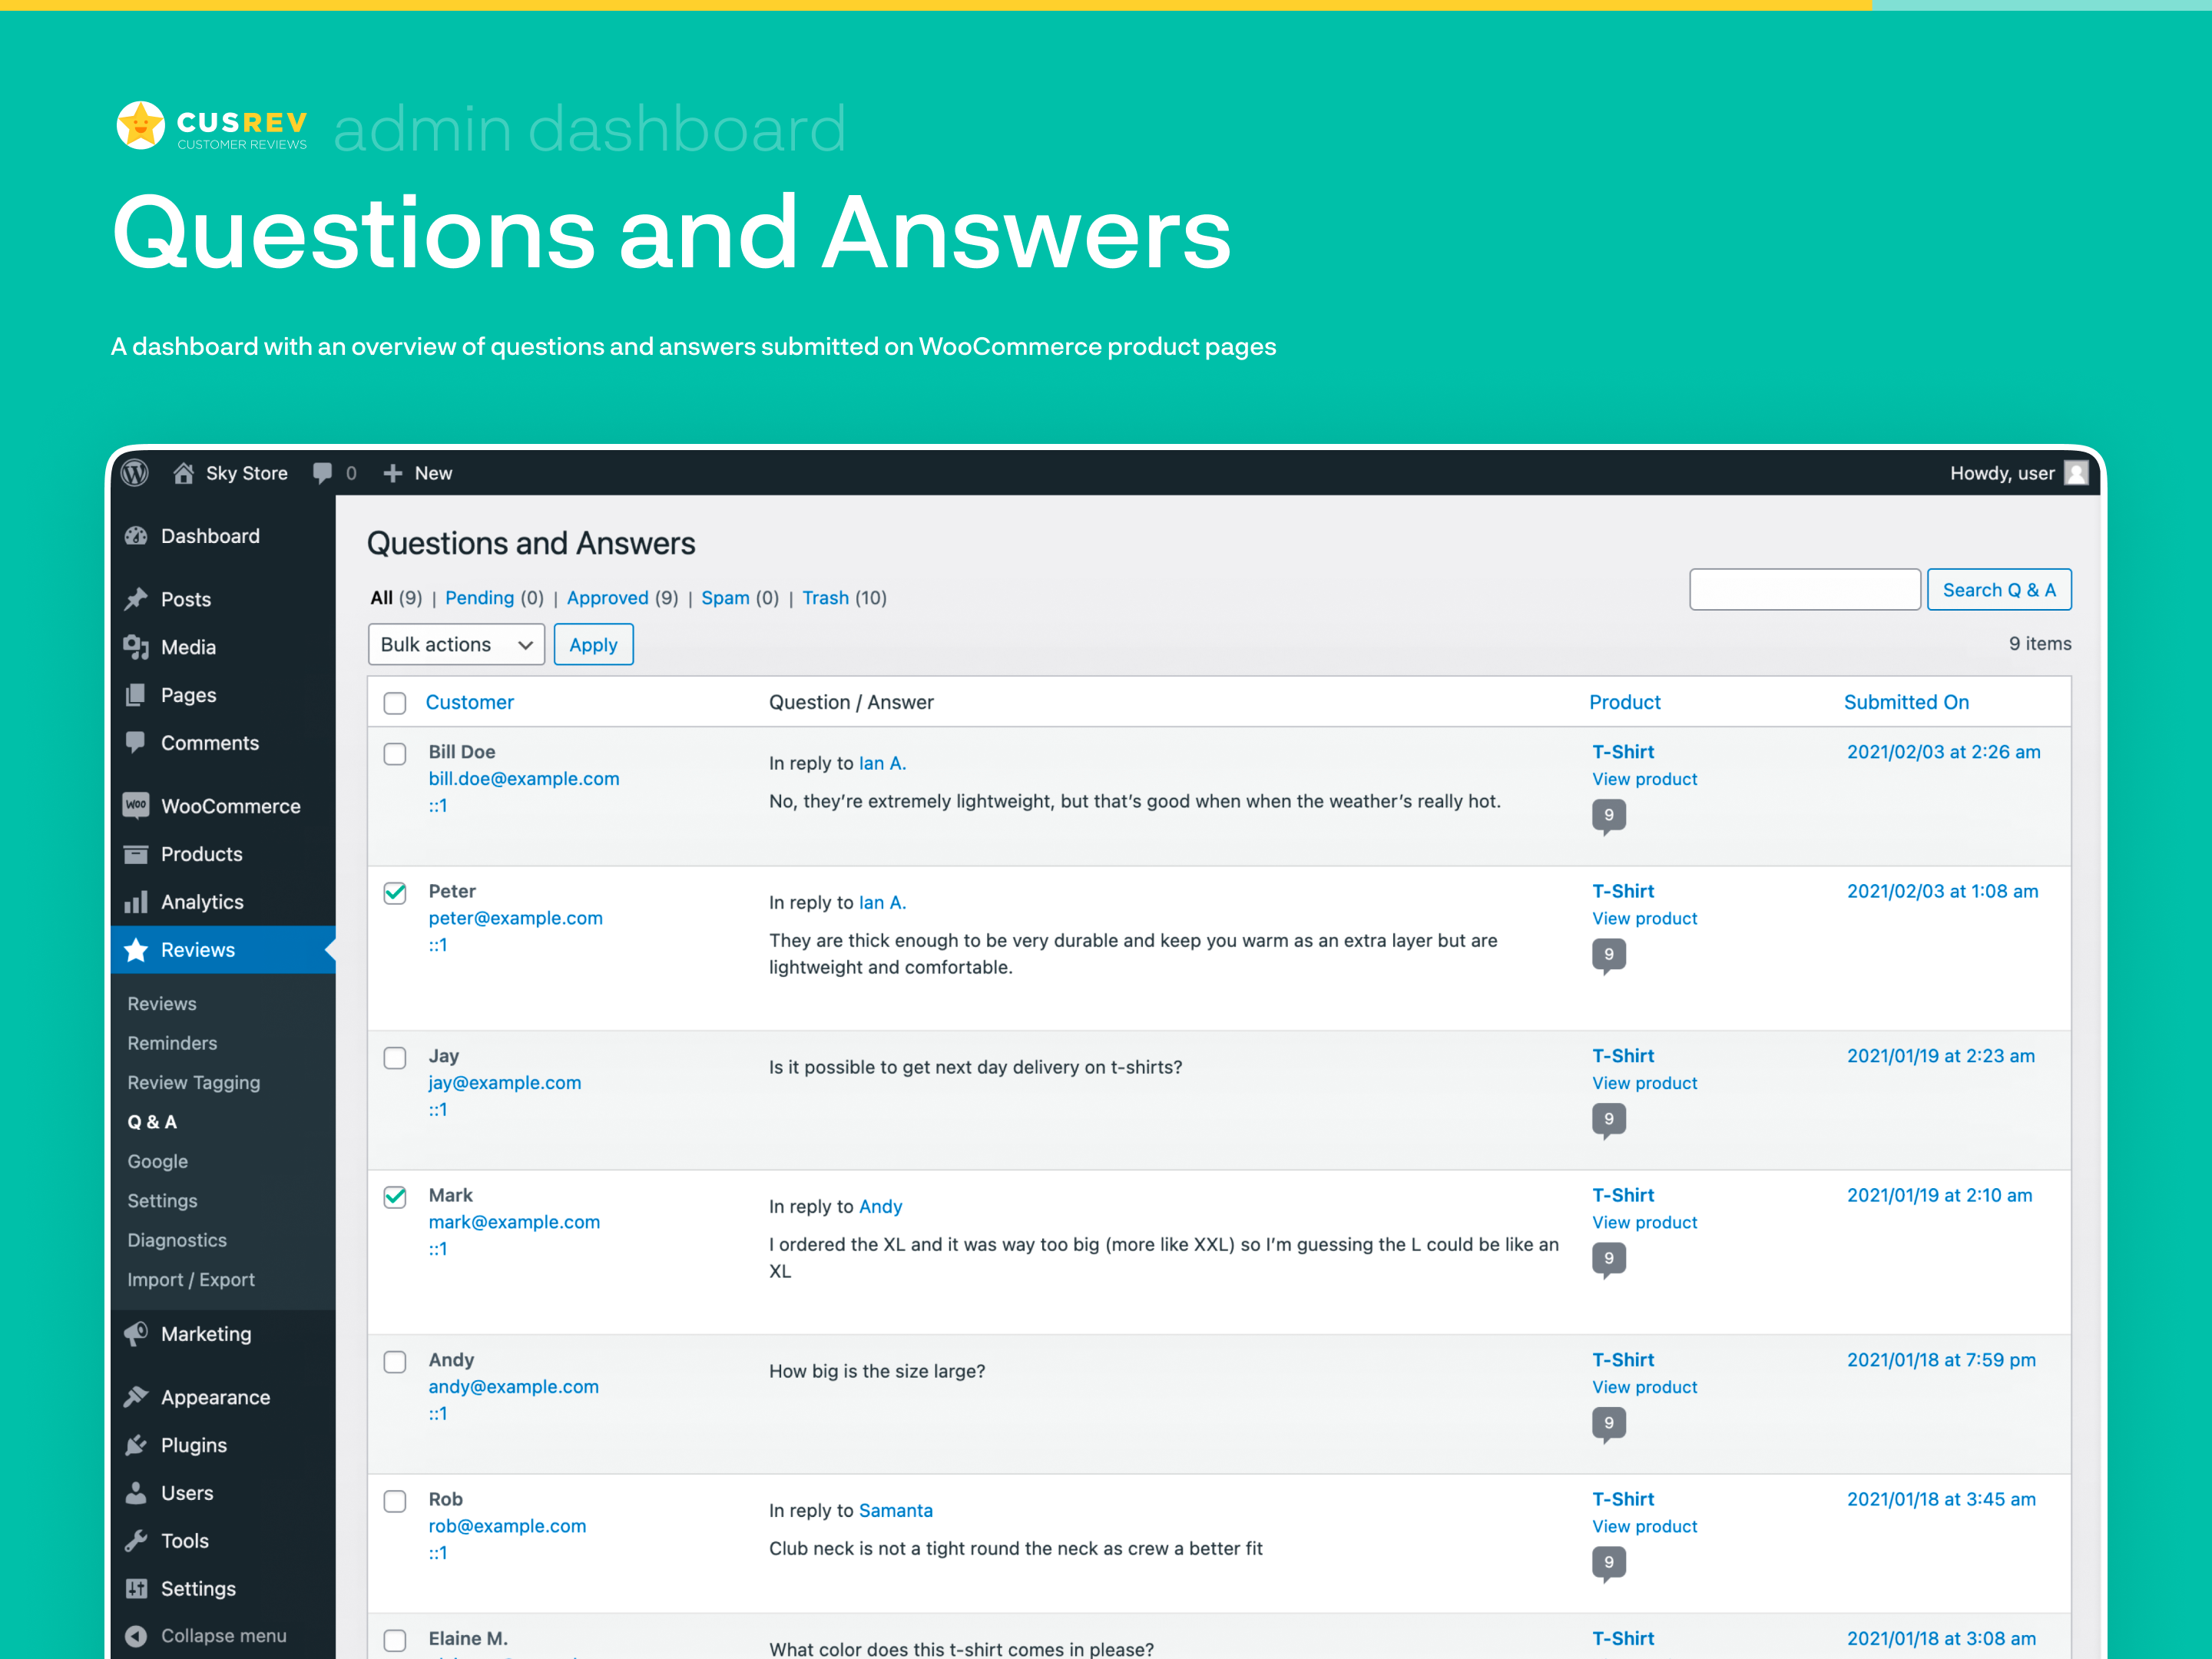 Questions and Answers (Admin Dashboard)